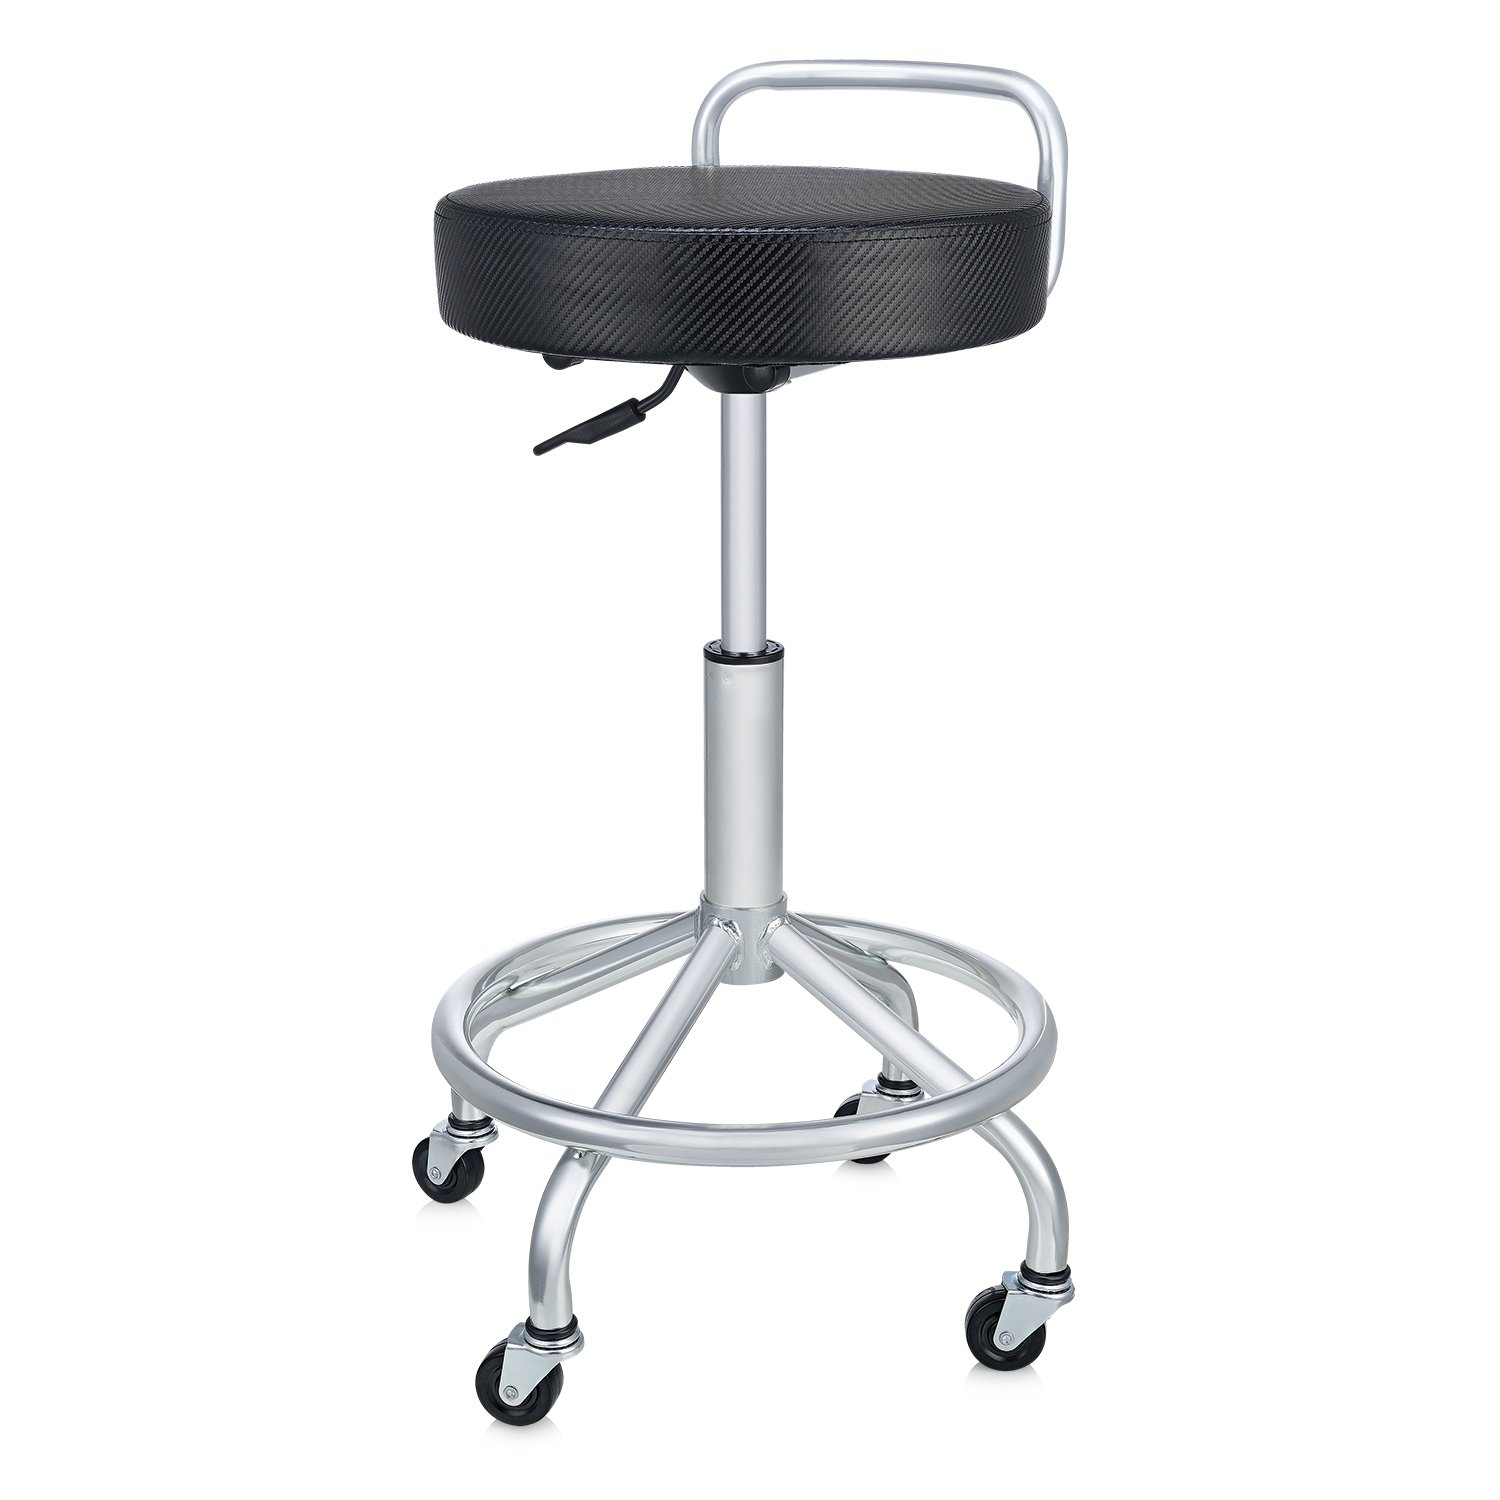 sc 1 st  Amazon.com & Amazon.com: UltraHD Cushioned Pneumatic Work Stool: Home u0026 Kitchen islam-shia.org